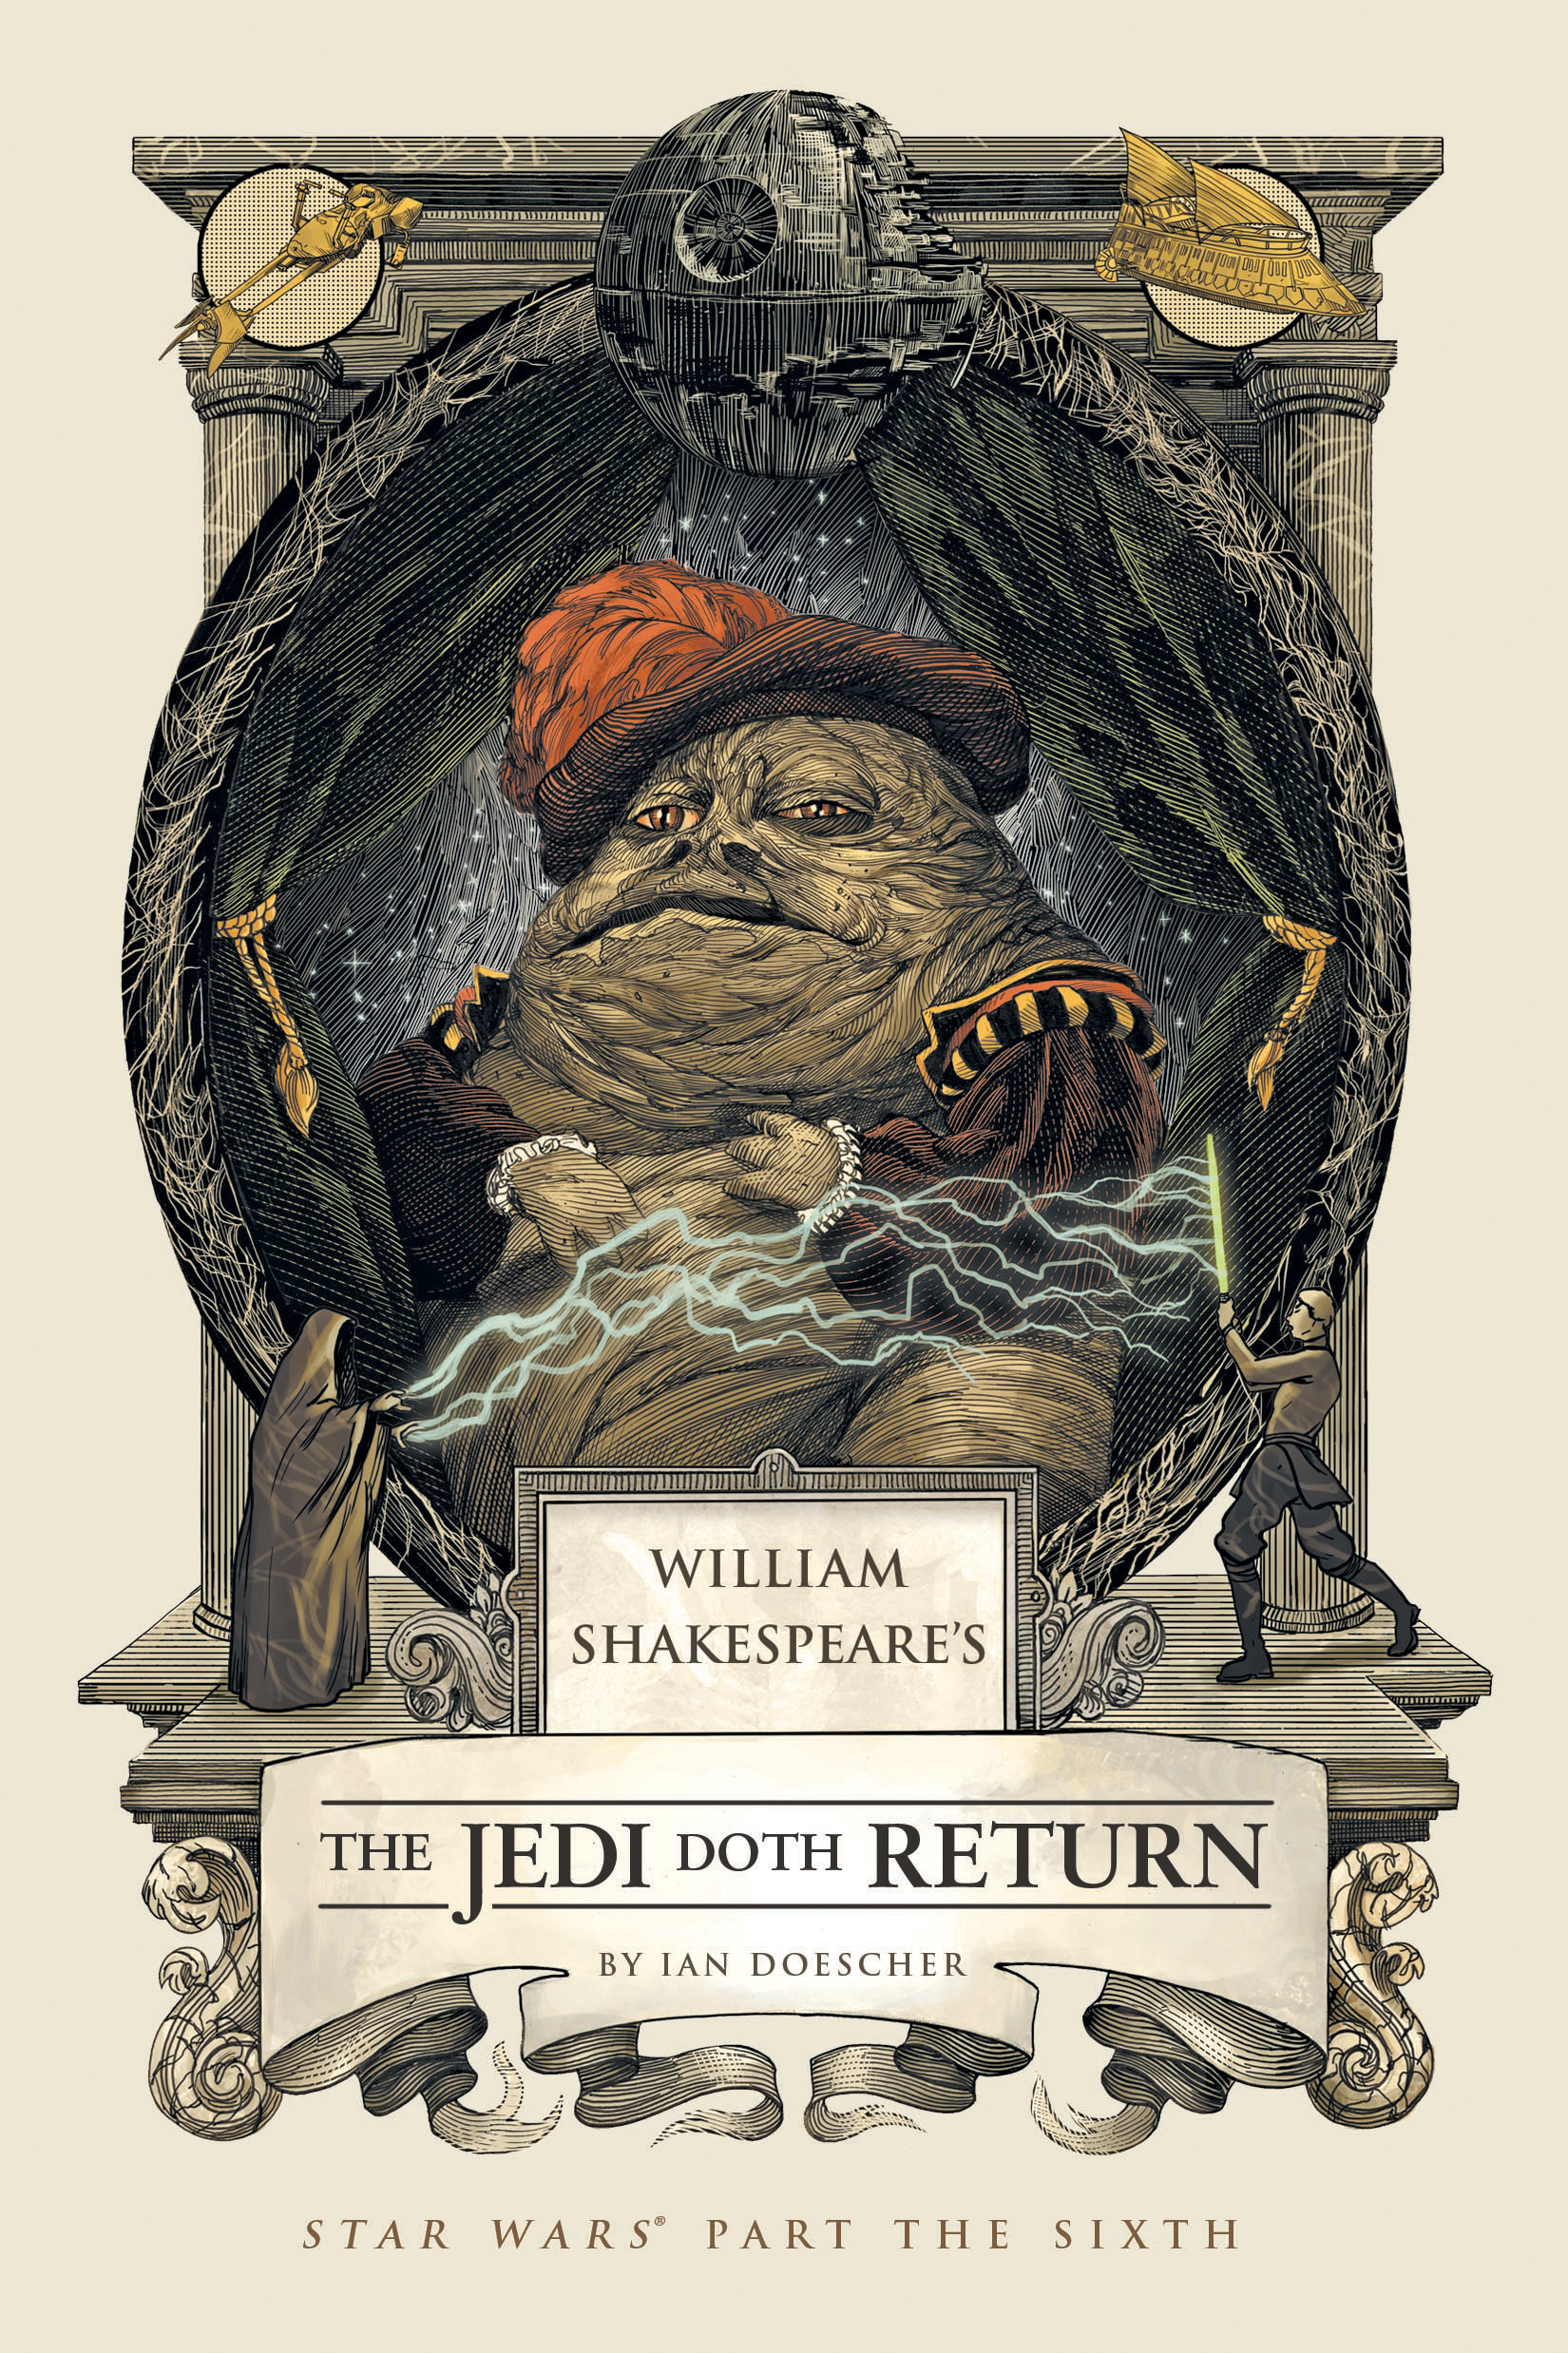 """Behold the new cover of """"William Shakespeare's The Jedi Doth Return"""" by  Ian Doescher, illustrated by Nicolas Delort."""